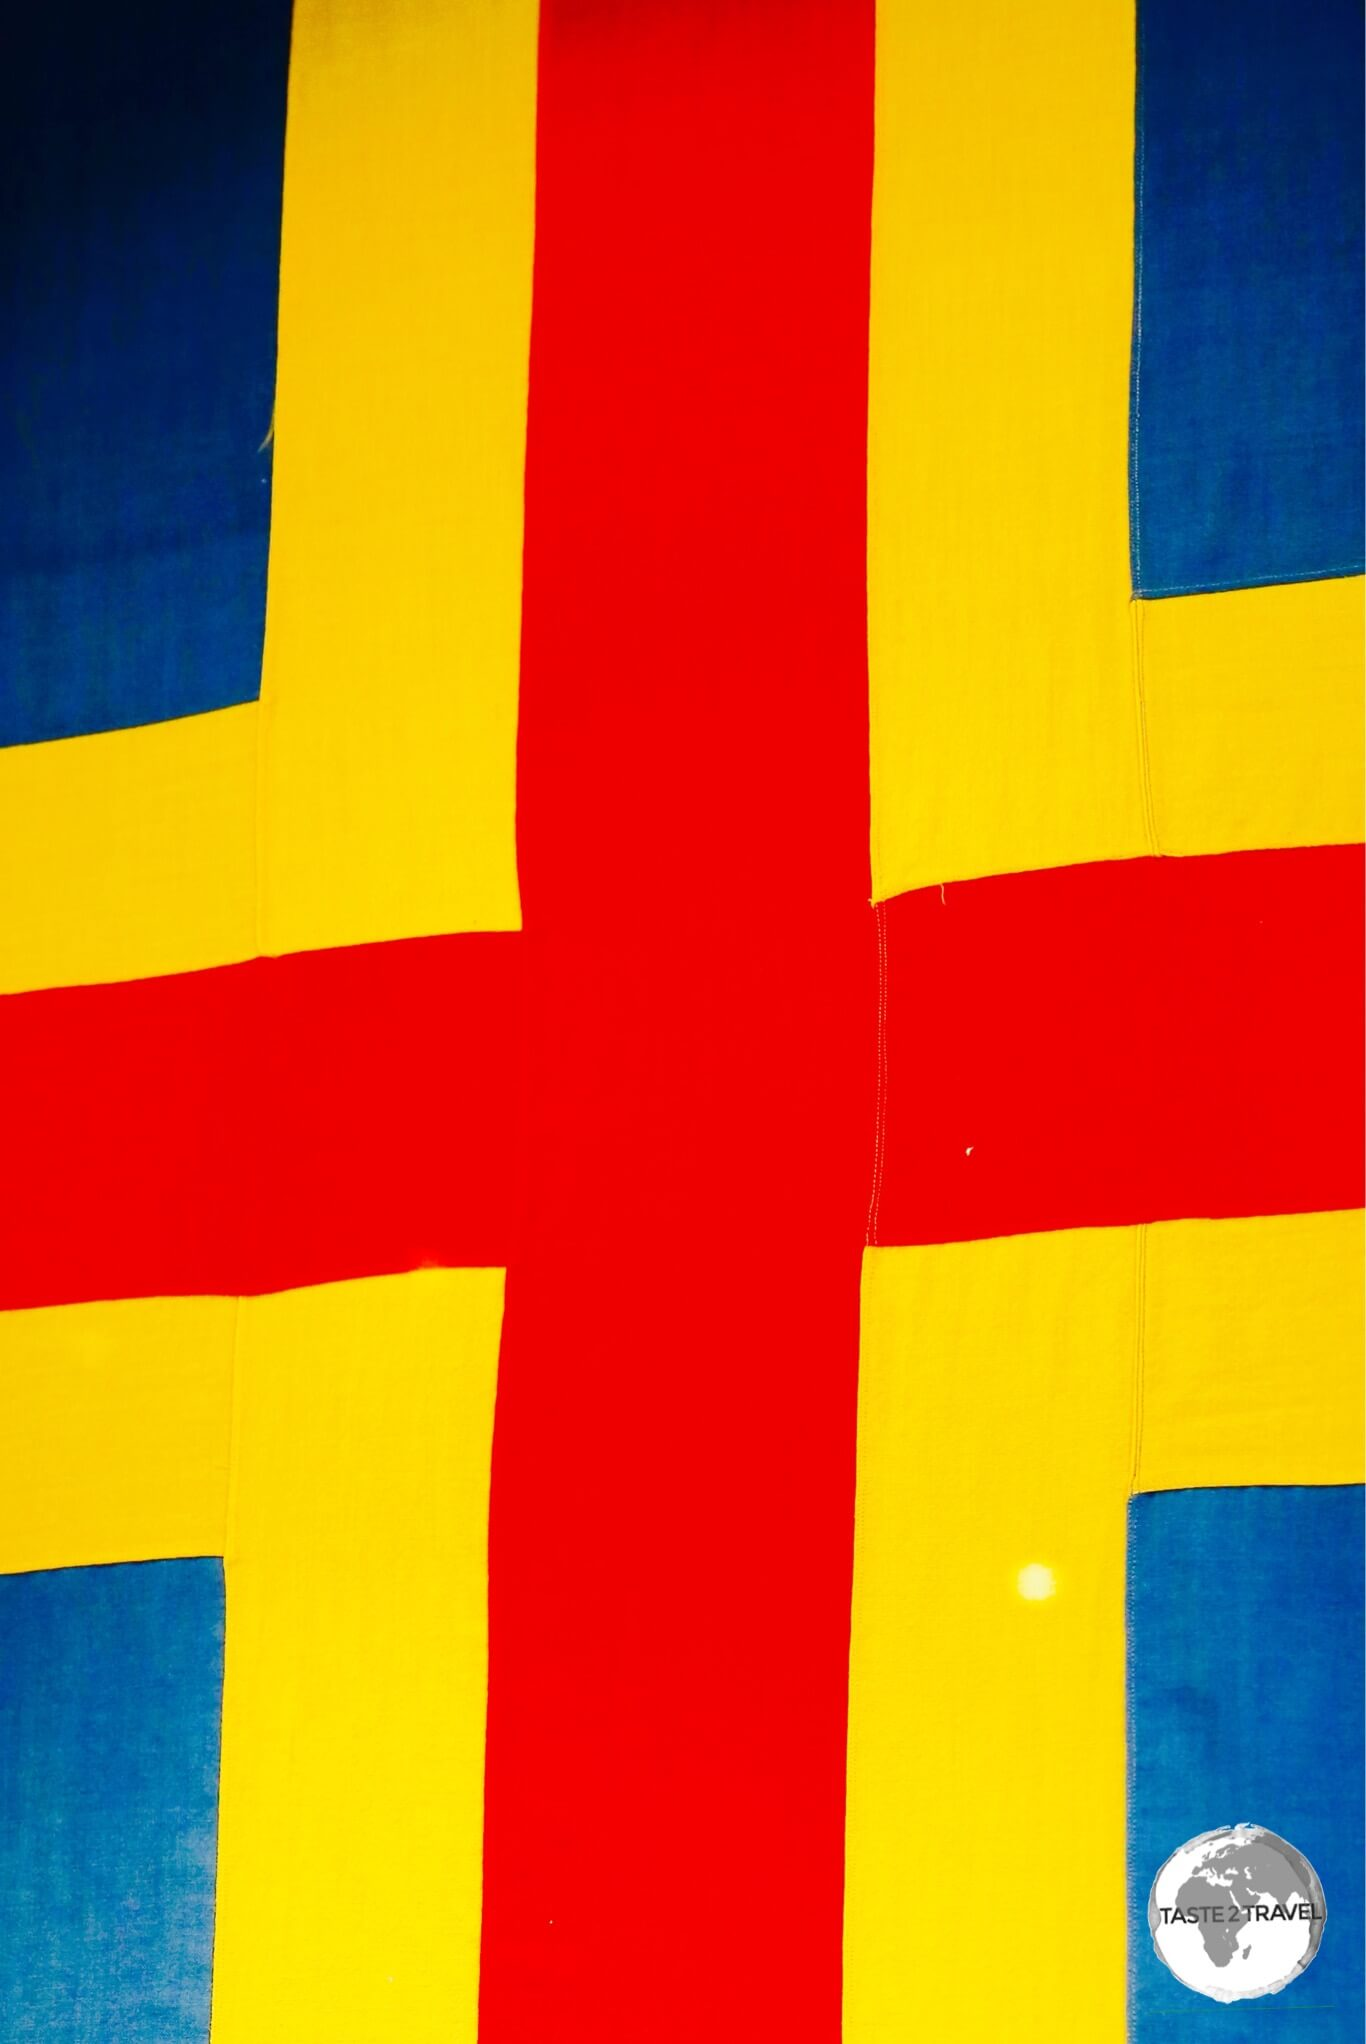 The flag of the Aland Islands is a Swedish flag over-layed with a red cross.